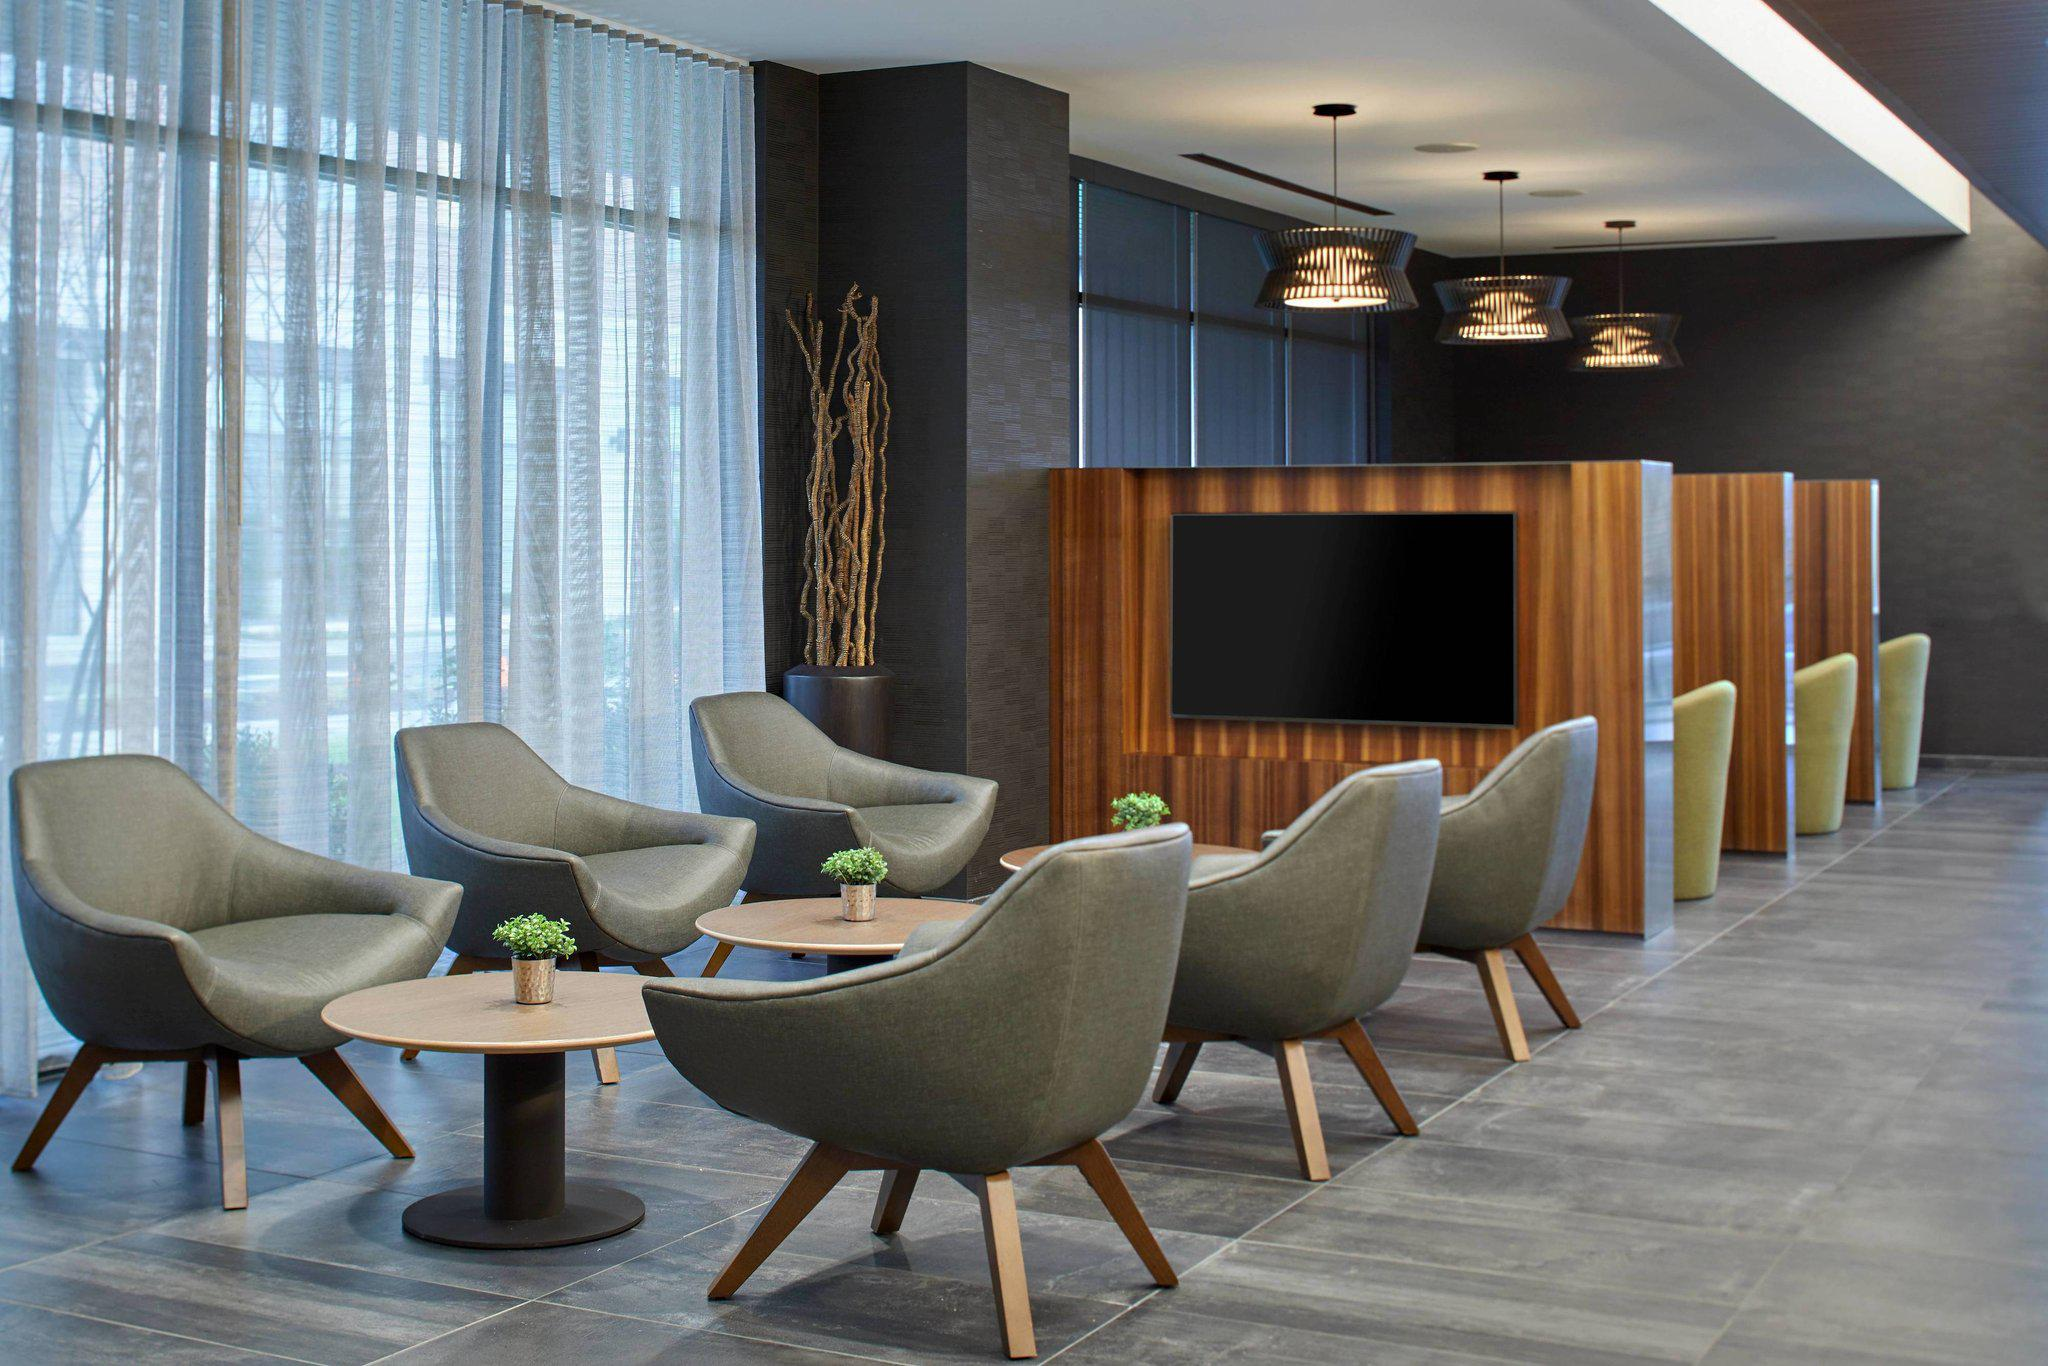 Courtyard by Marriott Baltimore Downtown/McHenry Row